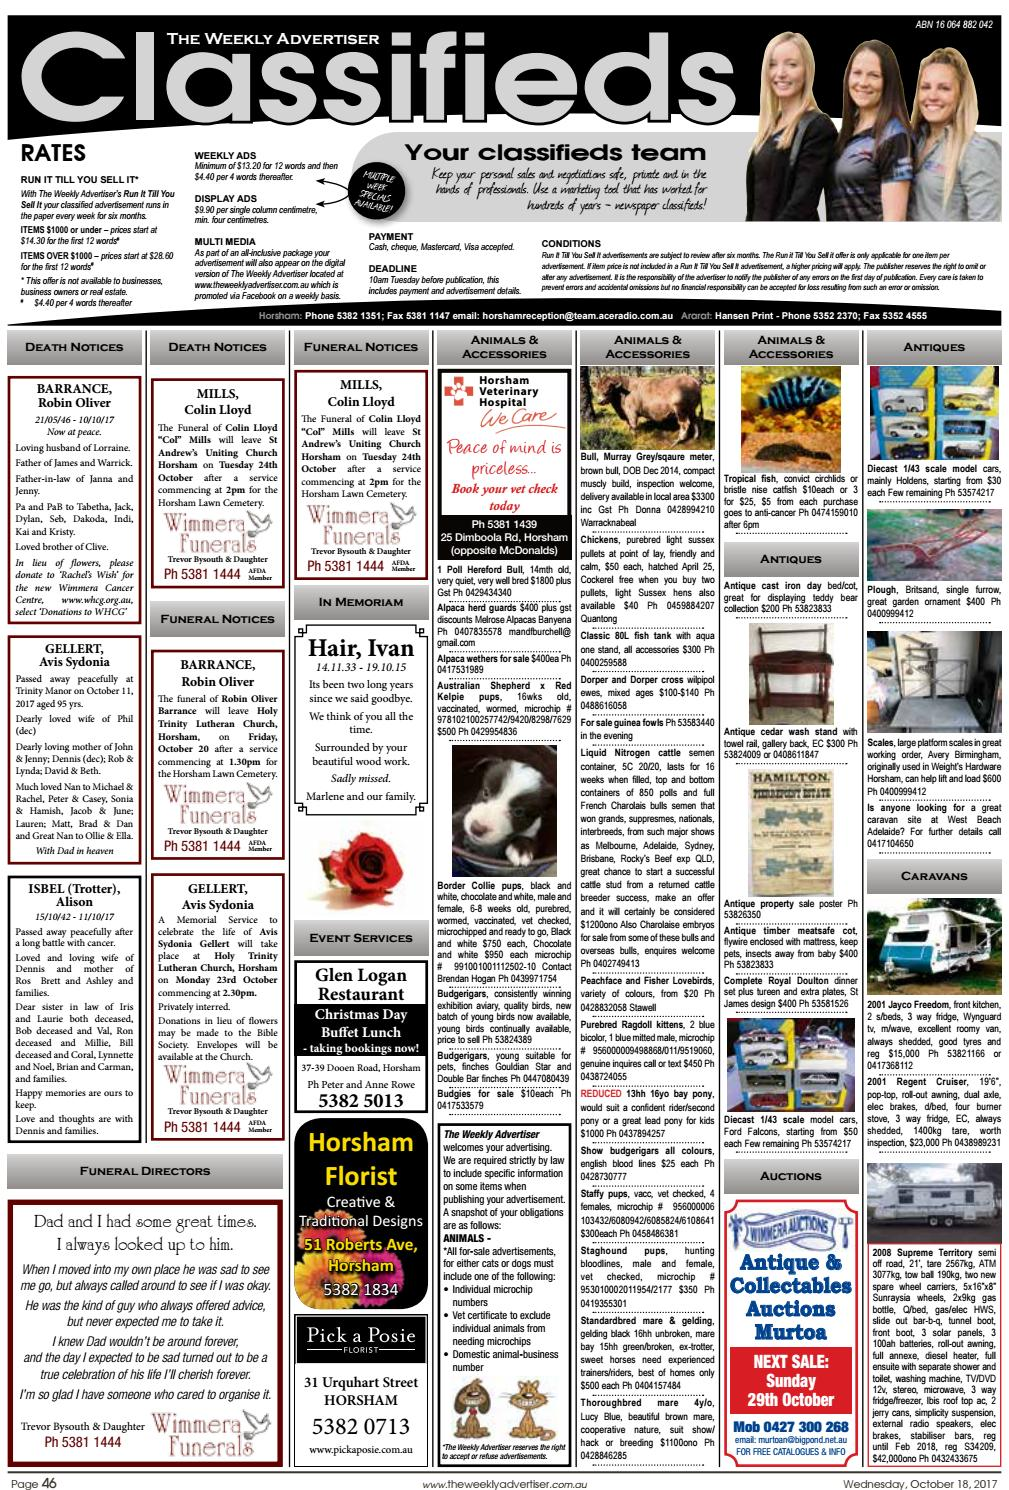 The Weekly Advertiser - Wednesday, October 18, 2017 by The